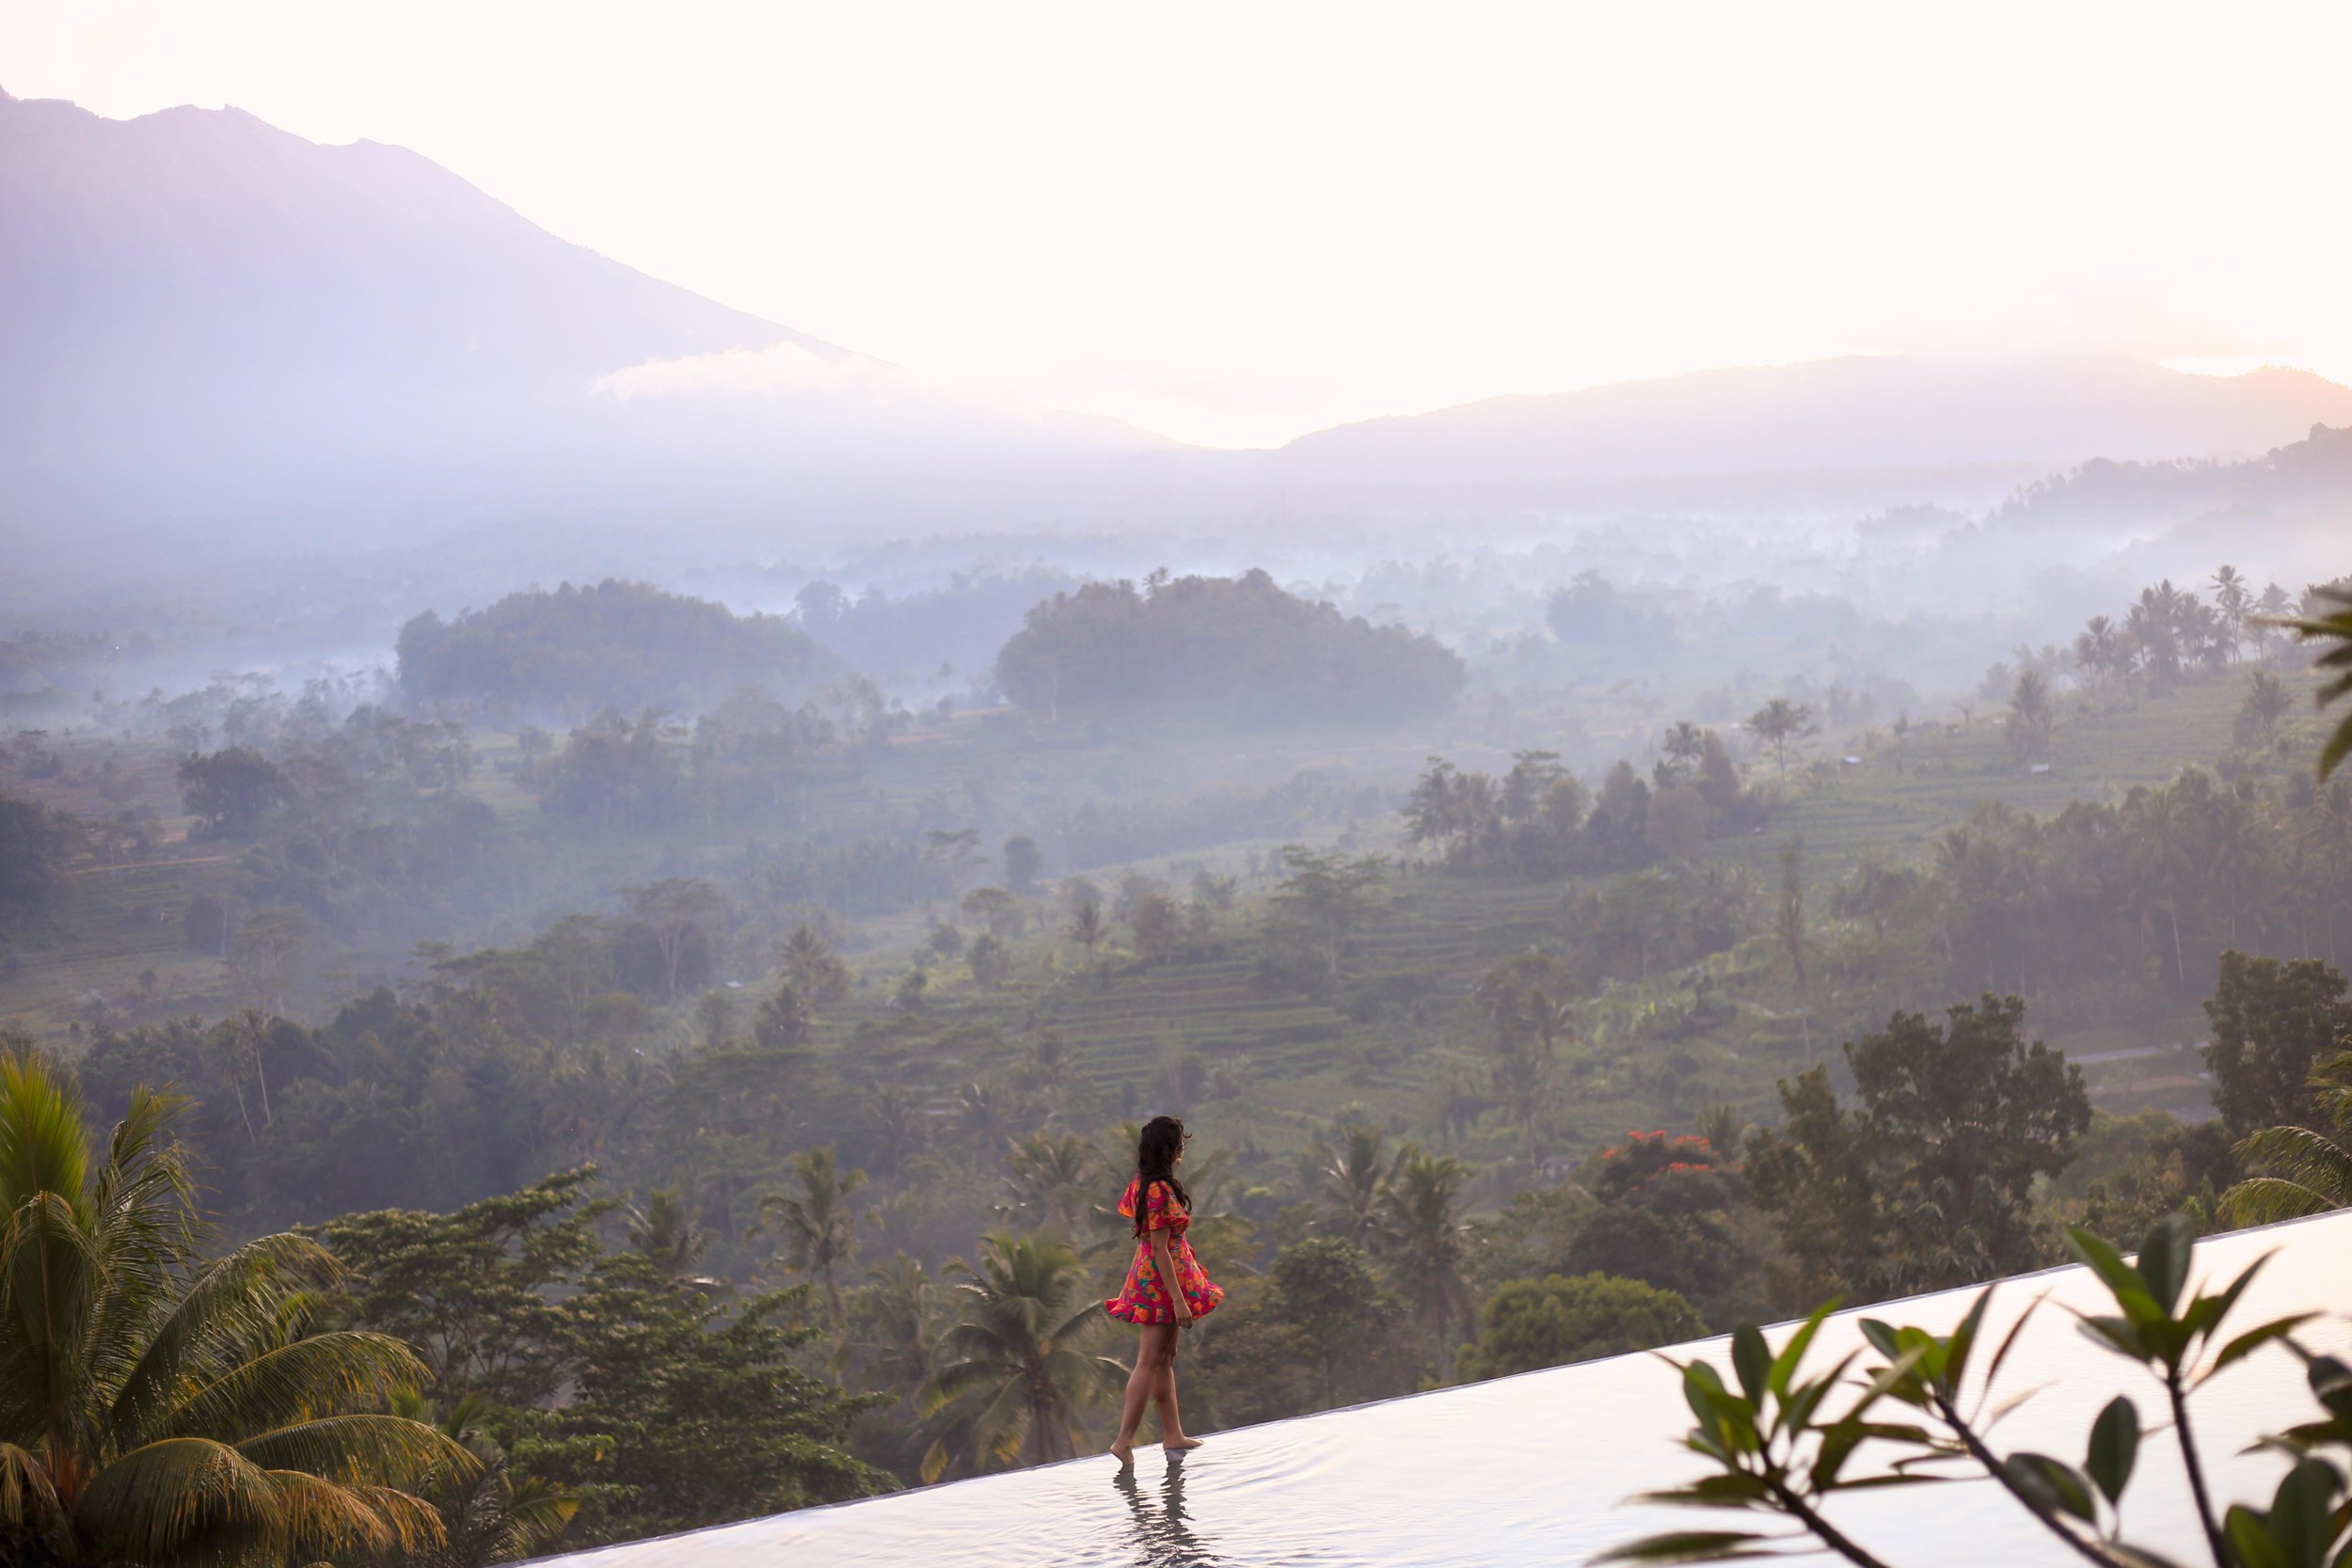 One of the most magical places we have visited. Sidemen, Bali (May 2019)